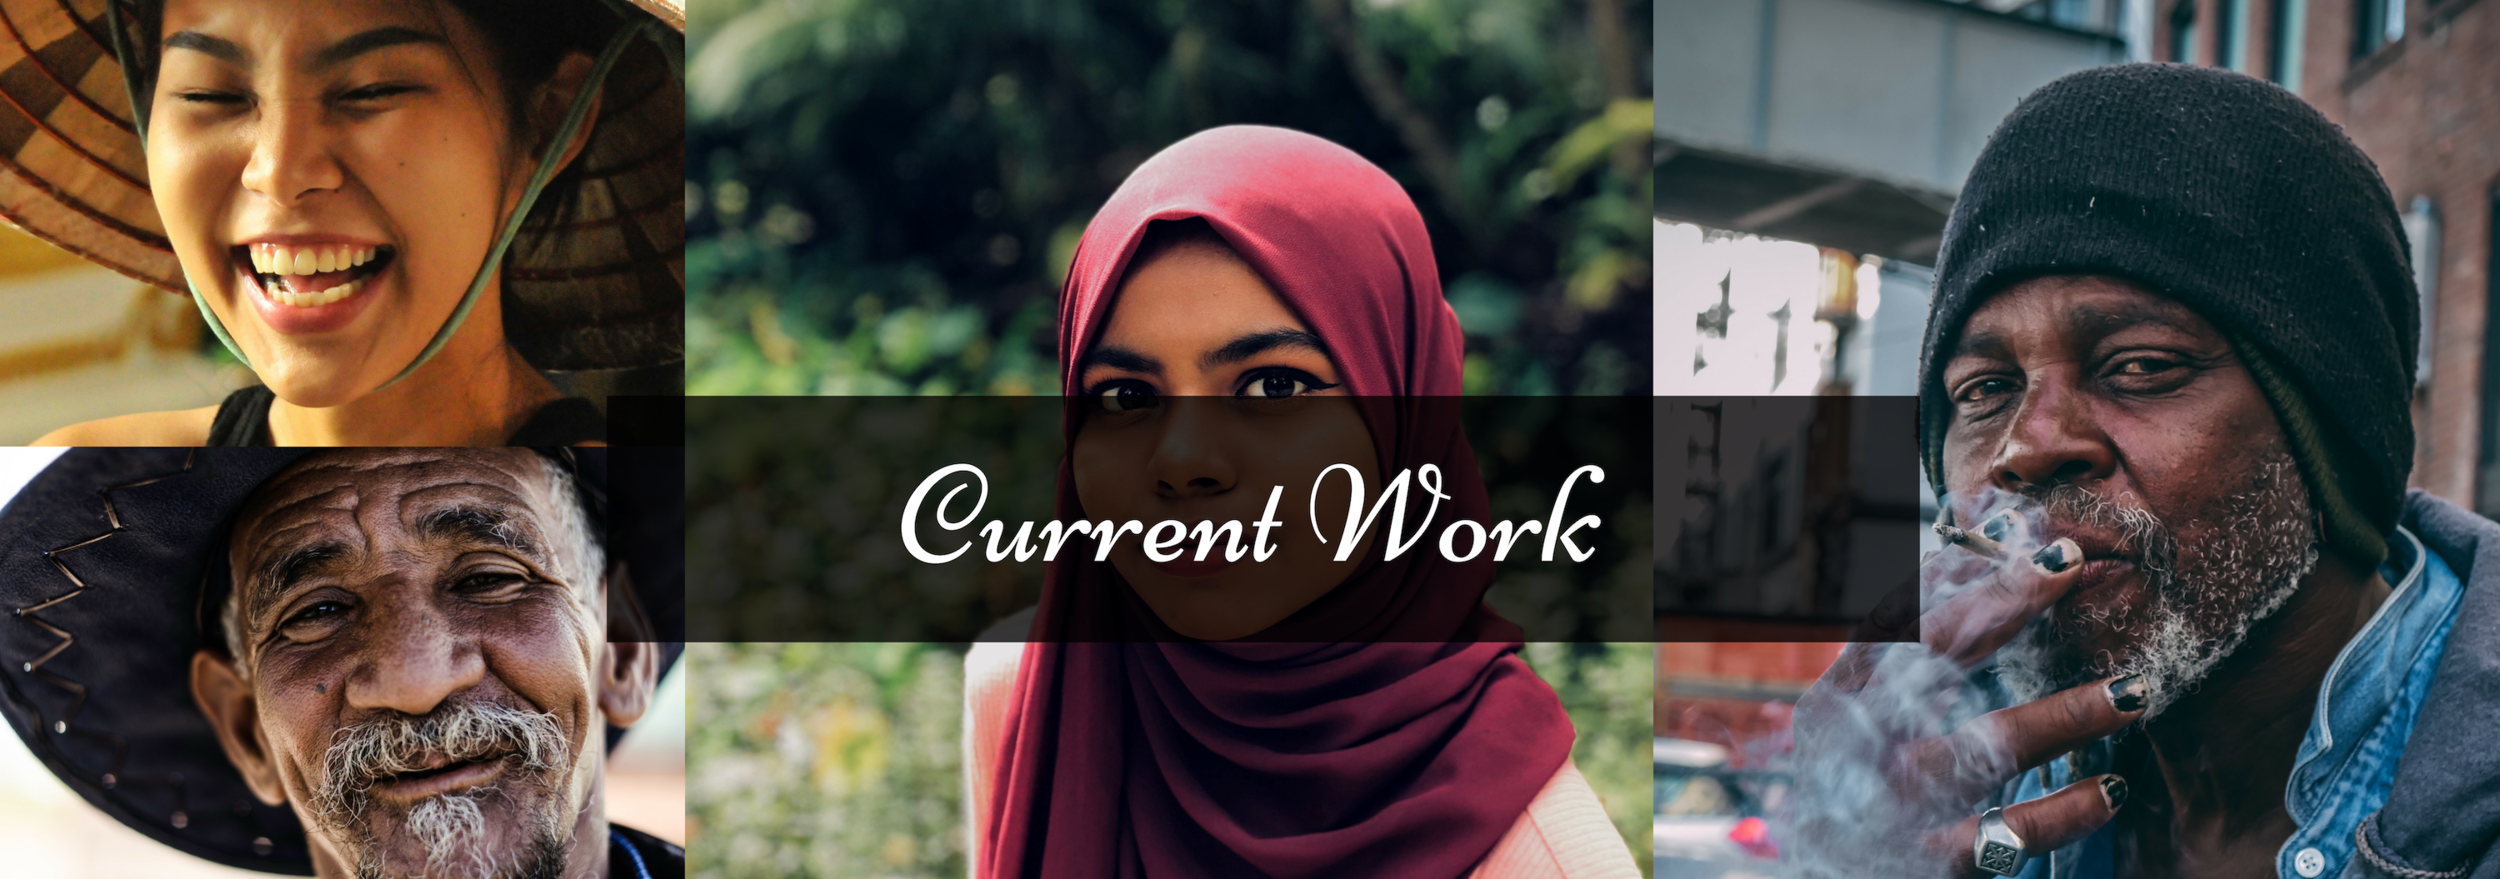 VOTC Banner_Current Works.png